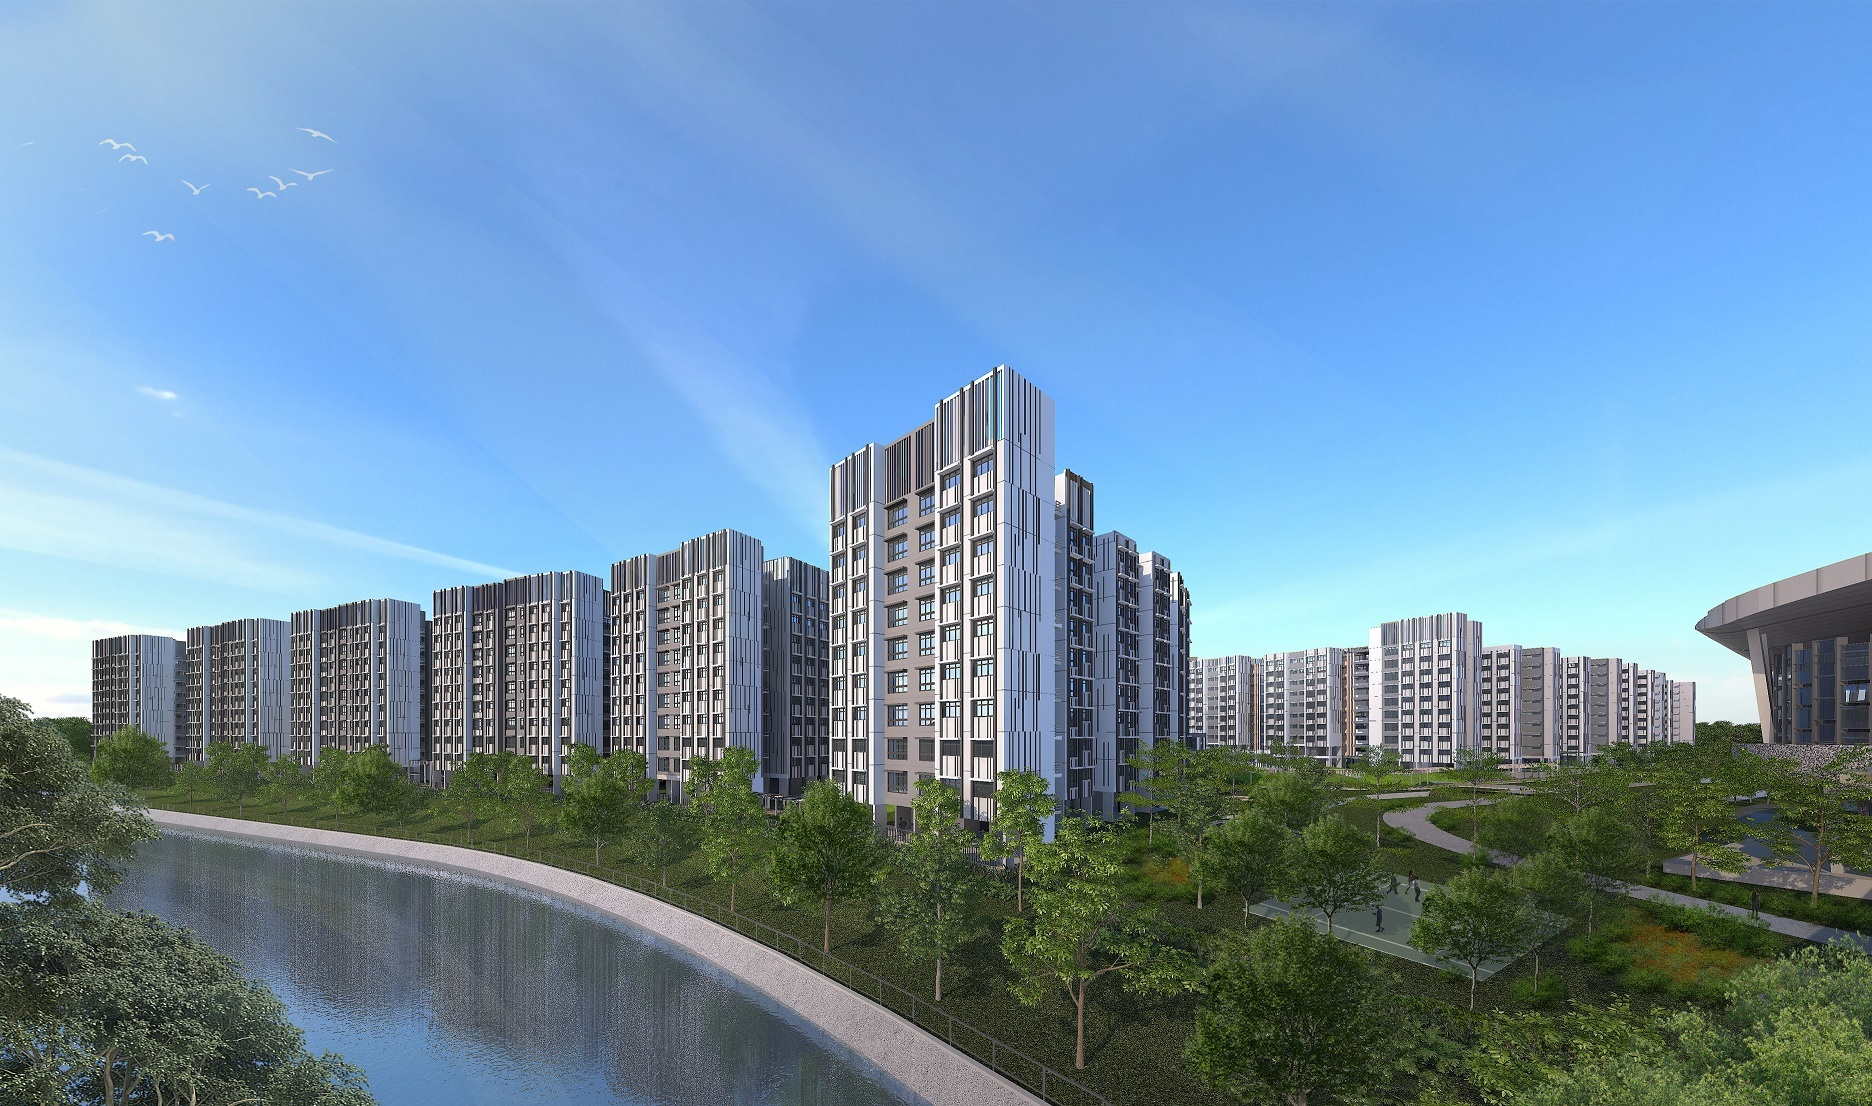 Canberra Vista is conveniently located next to Canberra MRT station and across the road from Canberra Plaza, the upcoming neighbourhood centre. (Picture: HDB)